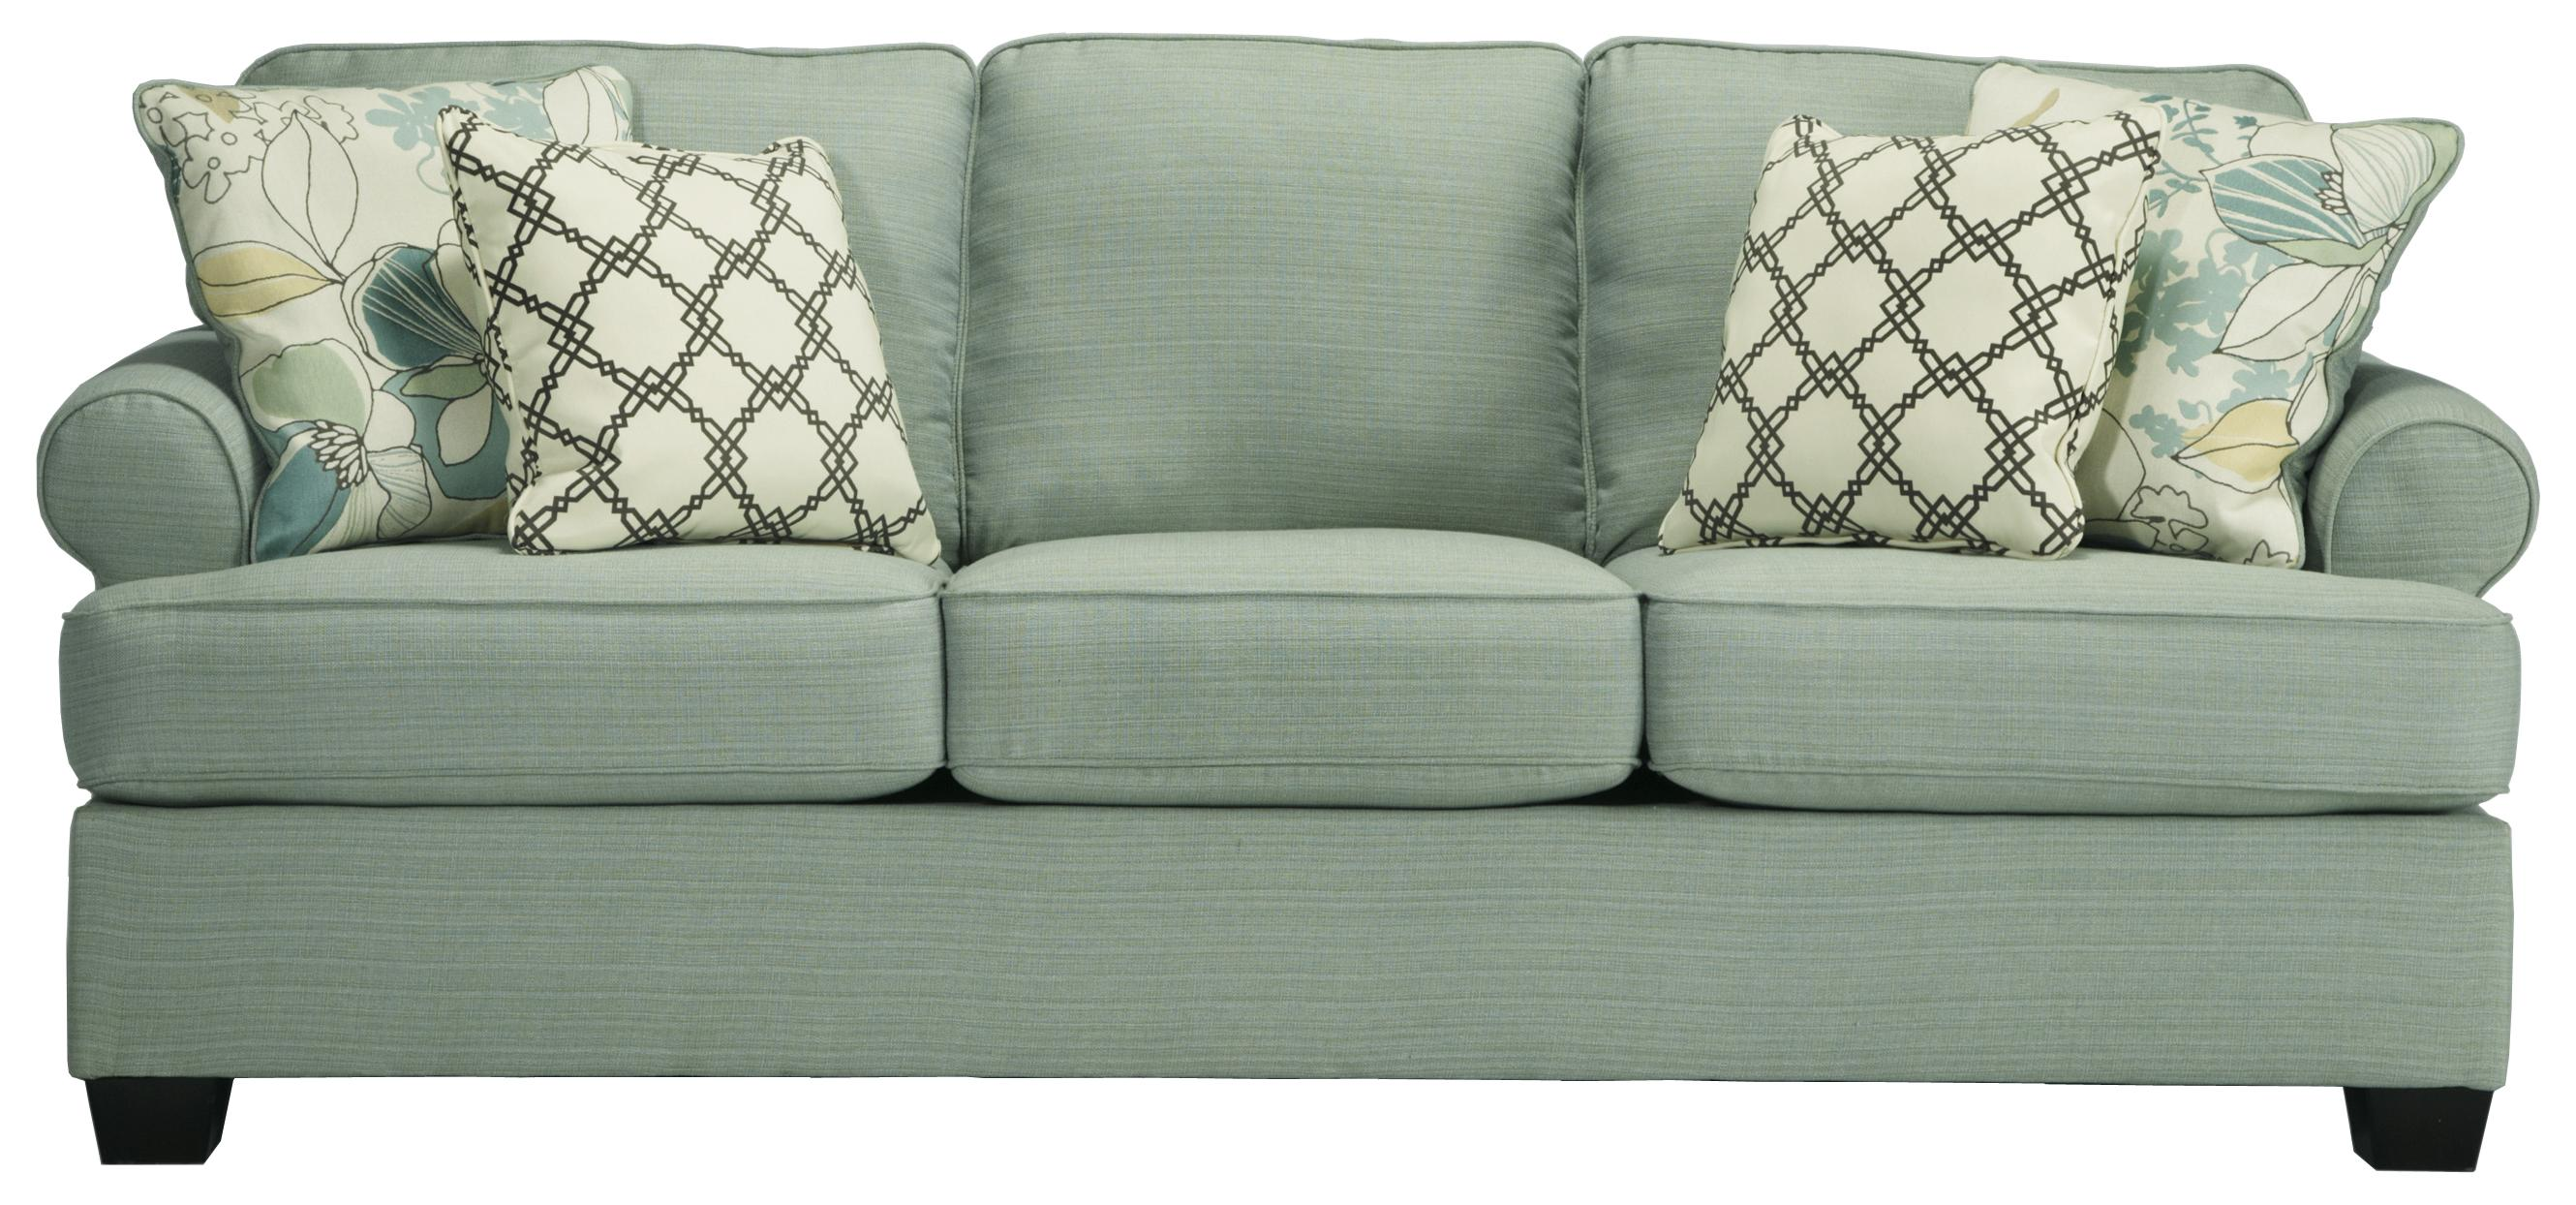 Signature Design by Ashley Daystar Seafoam Contemporary Queen